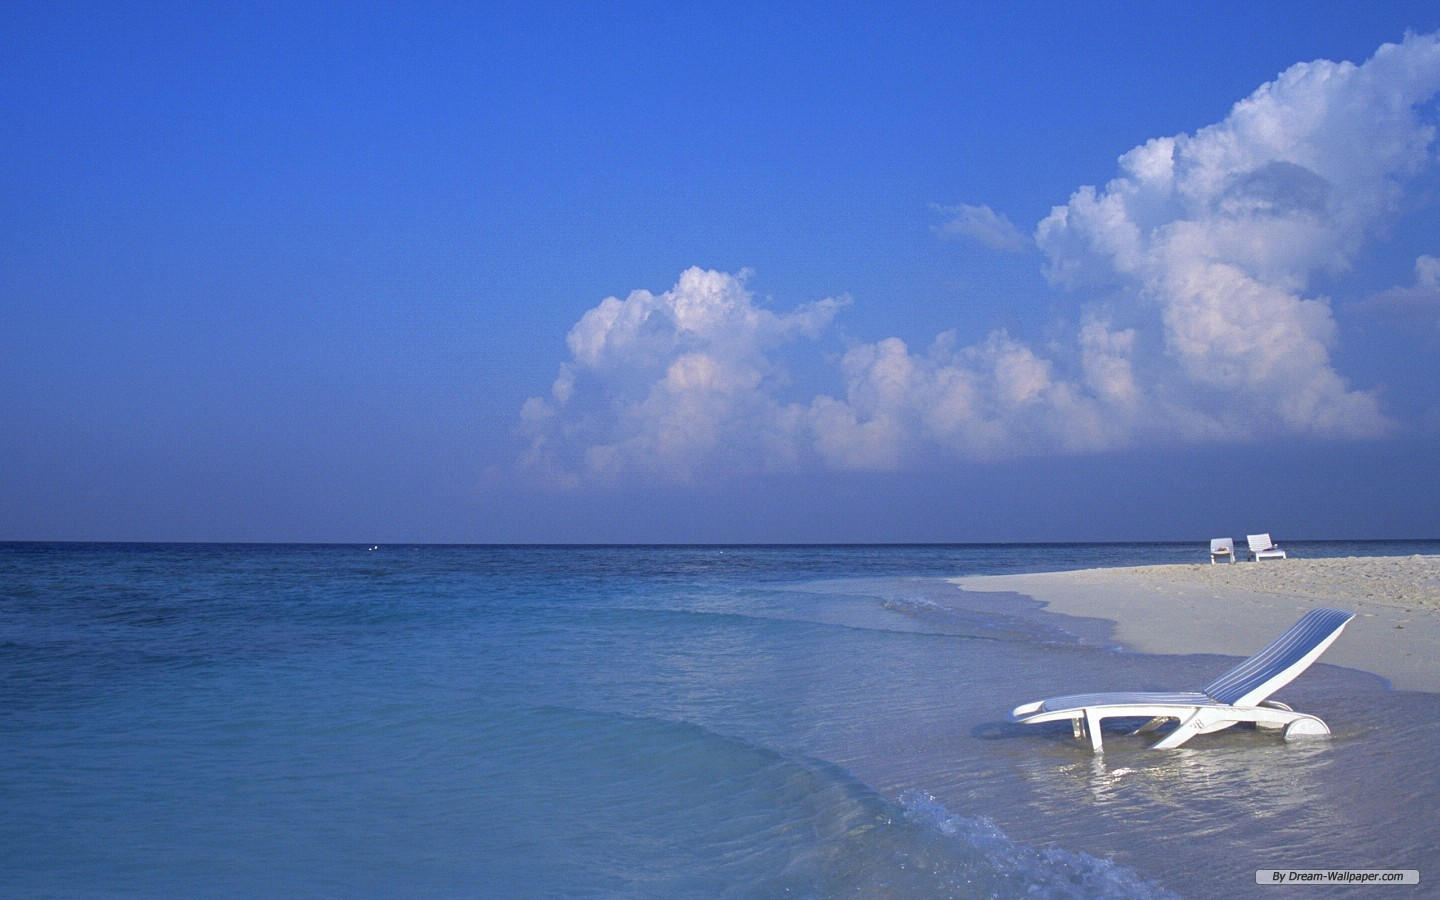 wallpaper   Maldives Beach wallpaper   1440x900 wallpaper   Index 8 1440x900